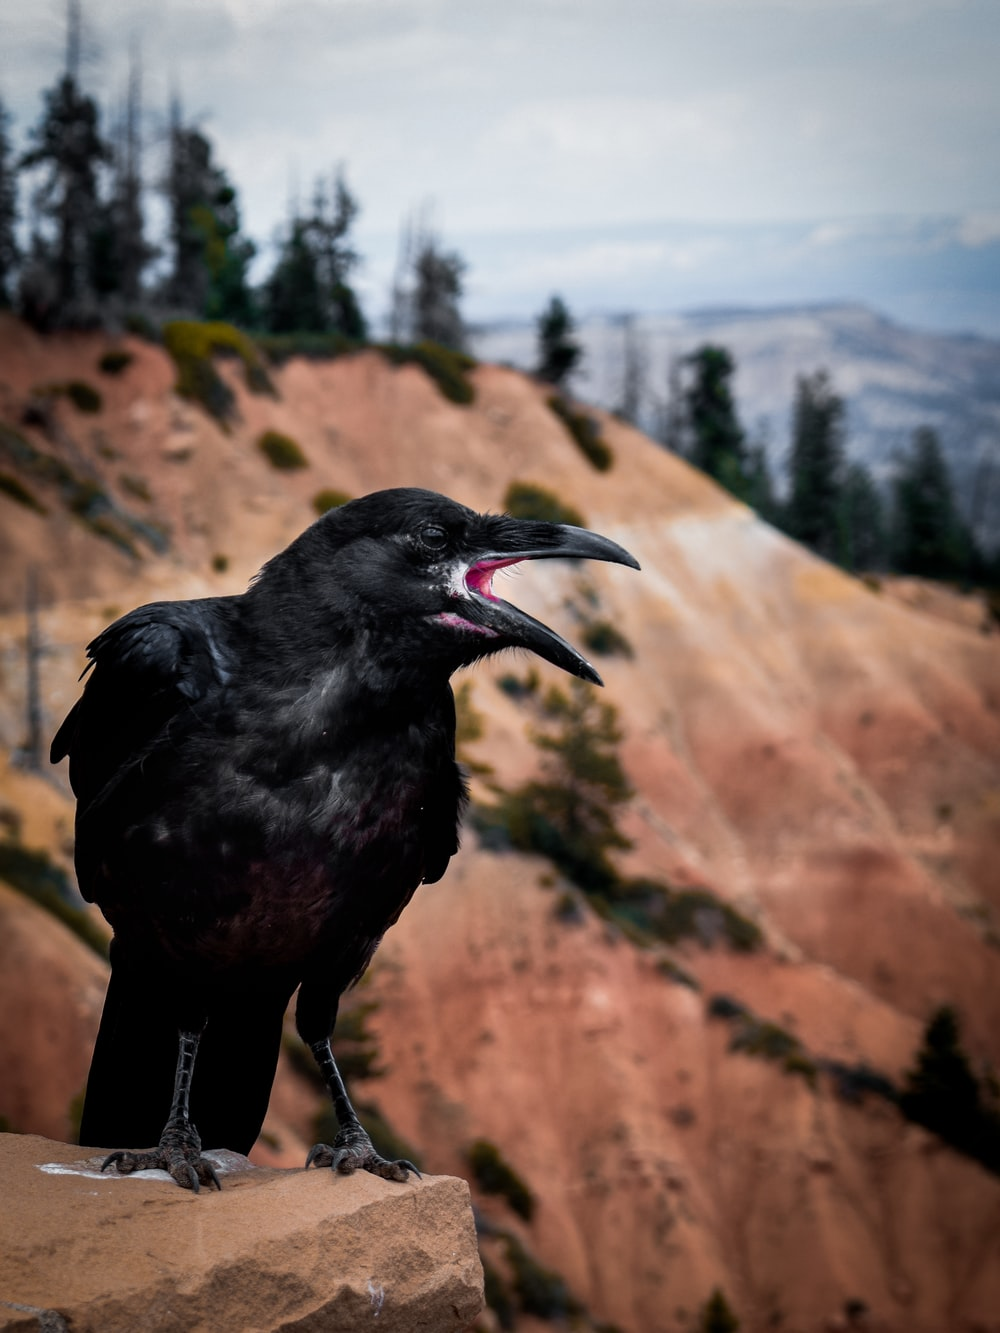 black crow on rock formation during daytime